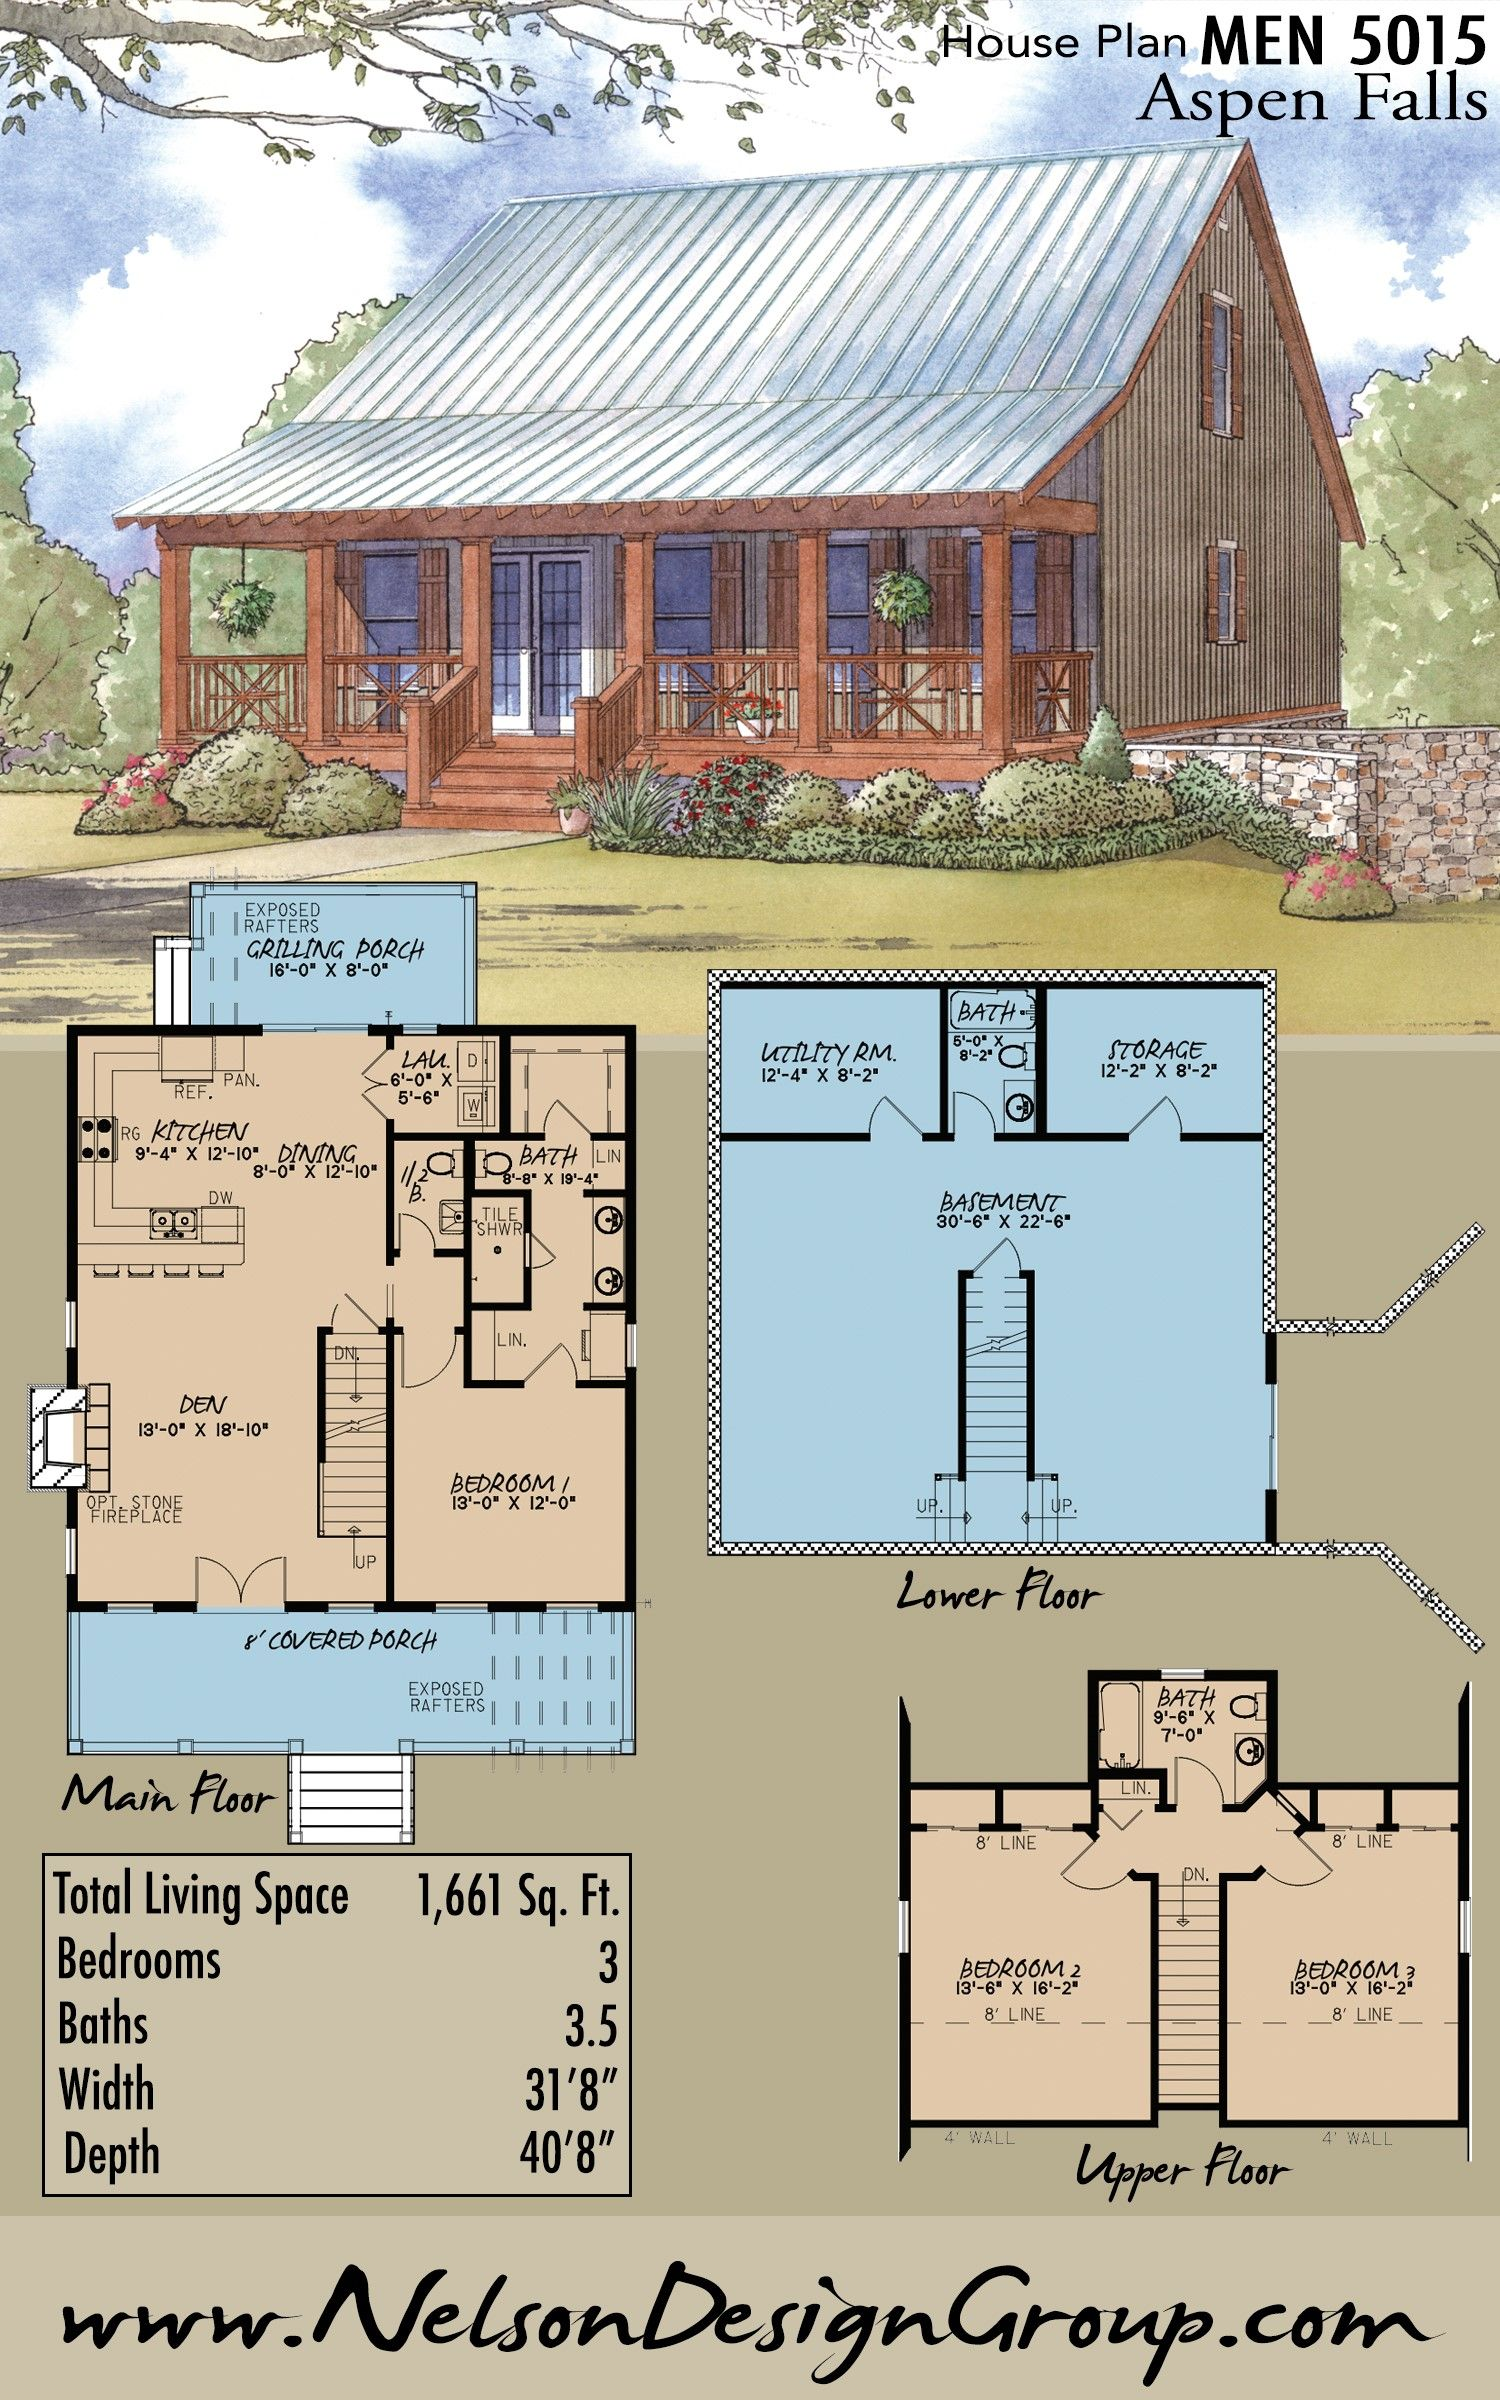 Houseplan Homeplan Homedesign Rustic Rusticstyle Cabin House Plan With Loft Log Cabin House Plans Beautiful Cabins